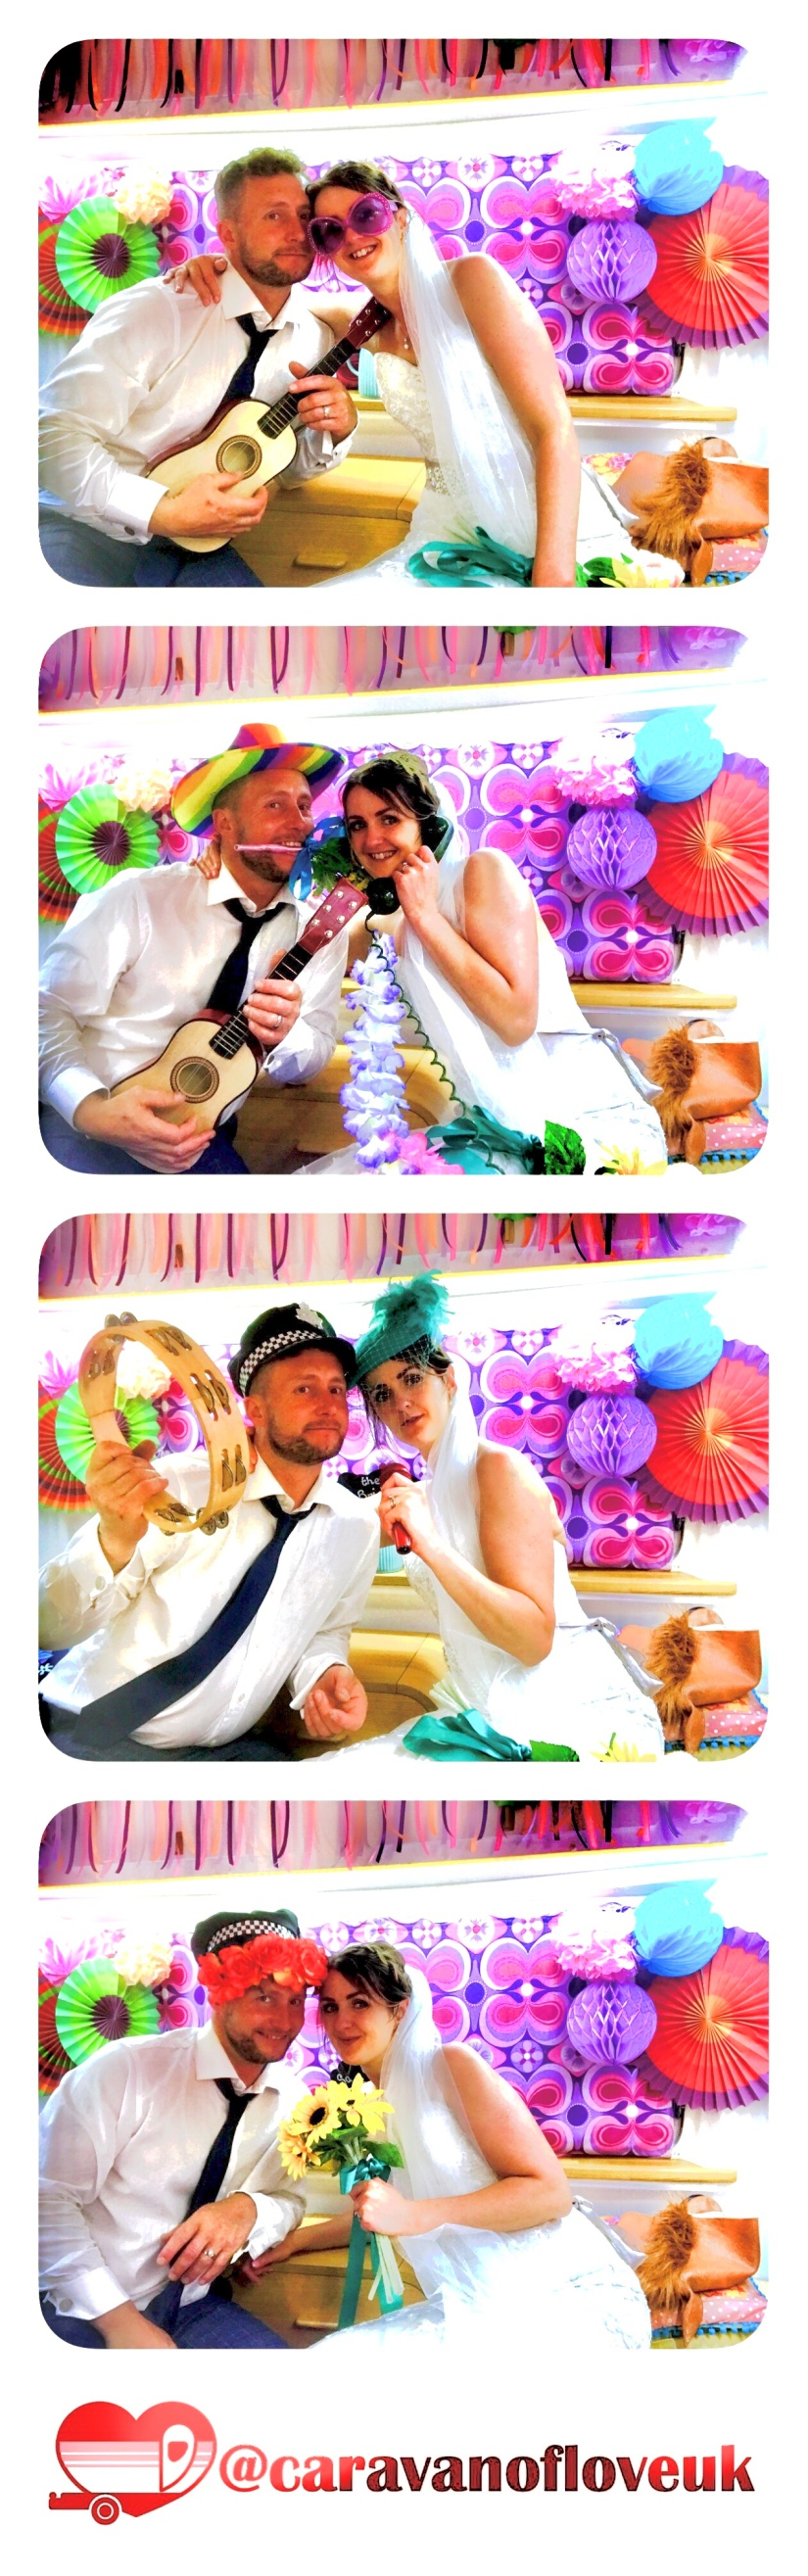 Caravan of Love, Wedding Photo Booth